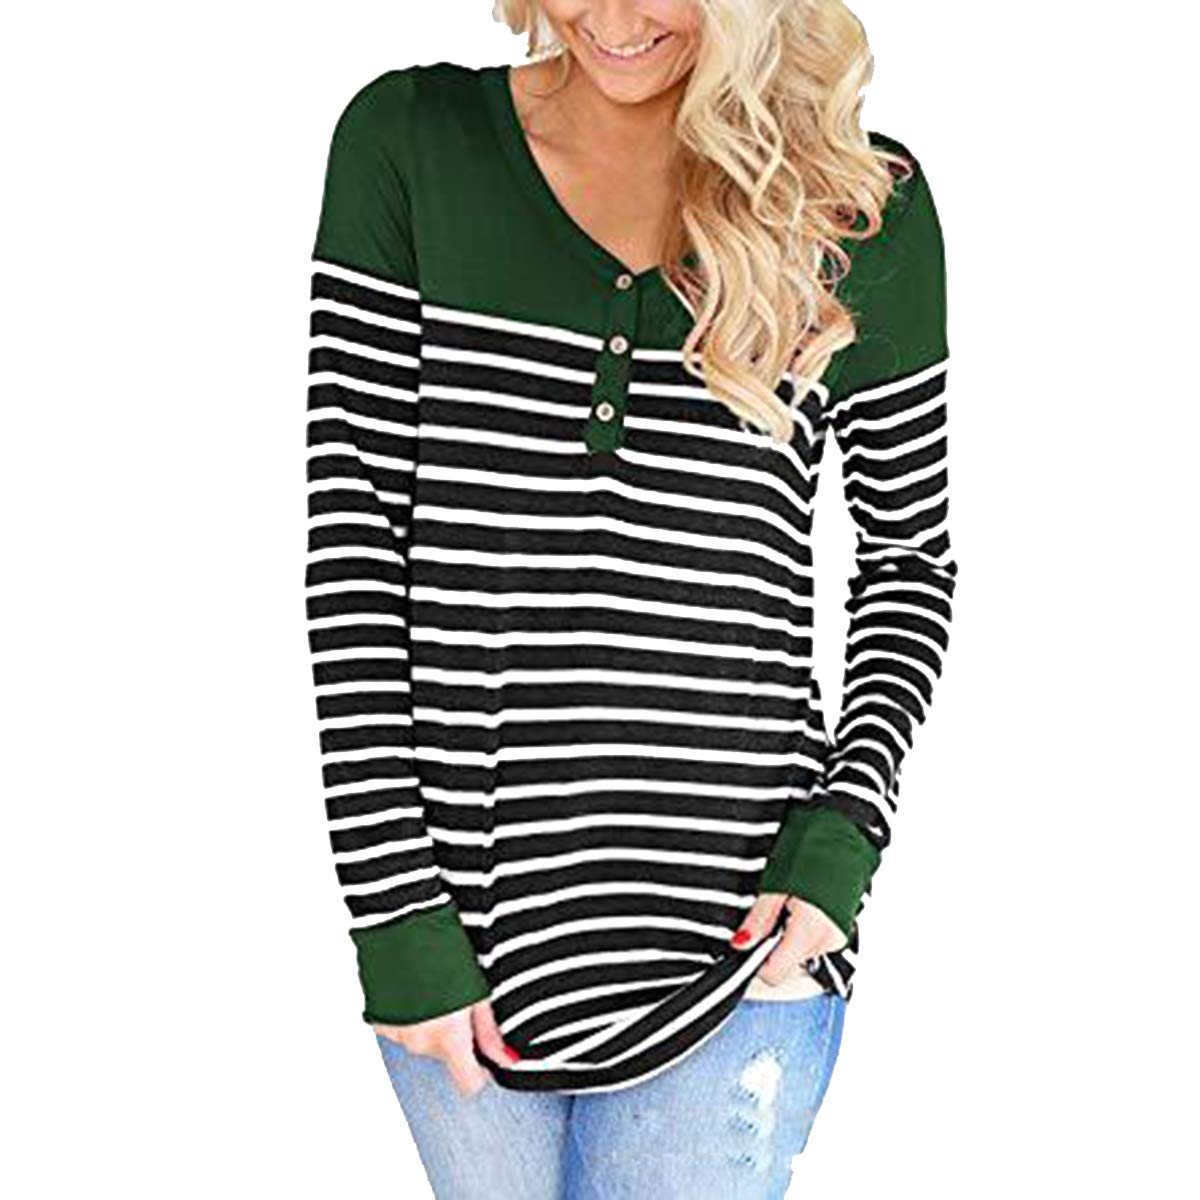 Ljdemmke Button Striped Patchwork T-Shirt O-Neck Color Block Causal Tees